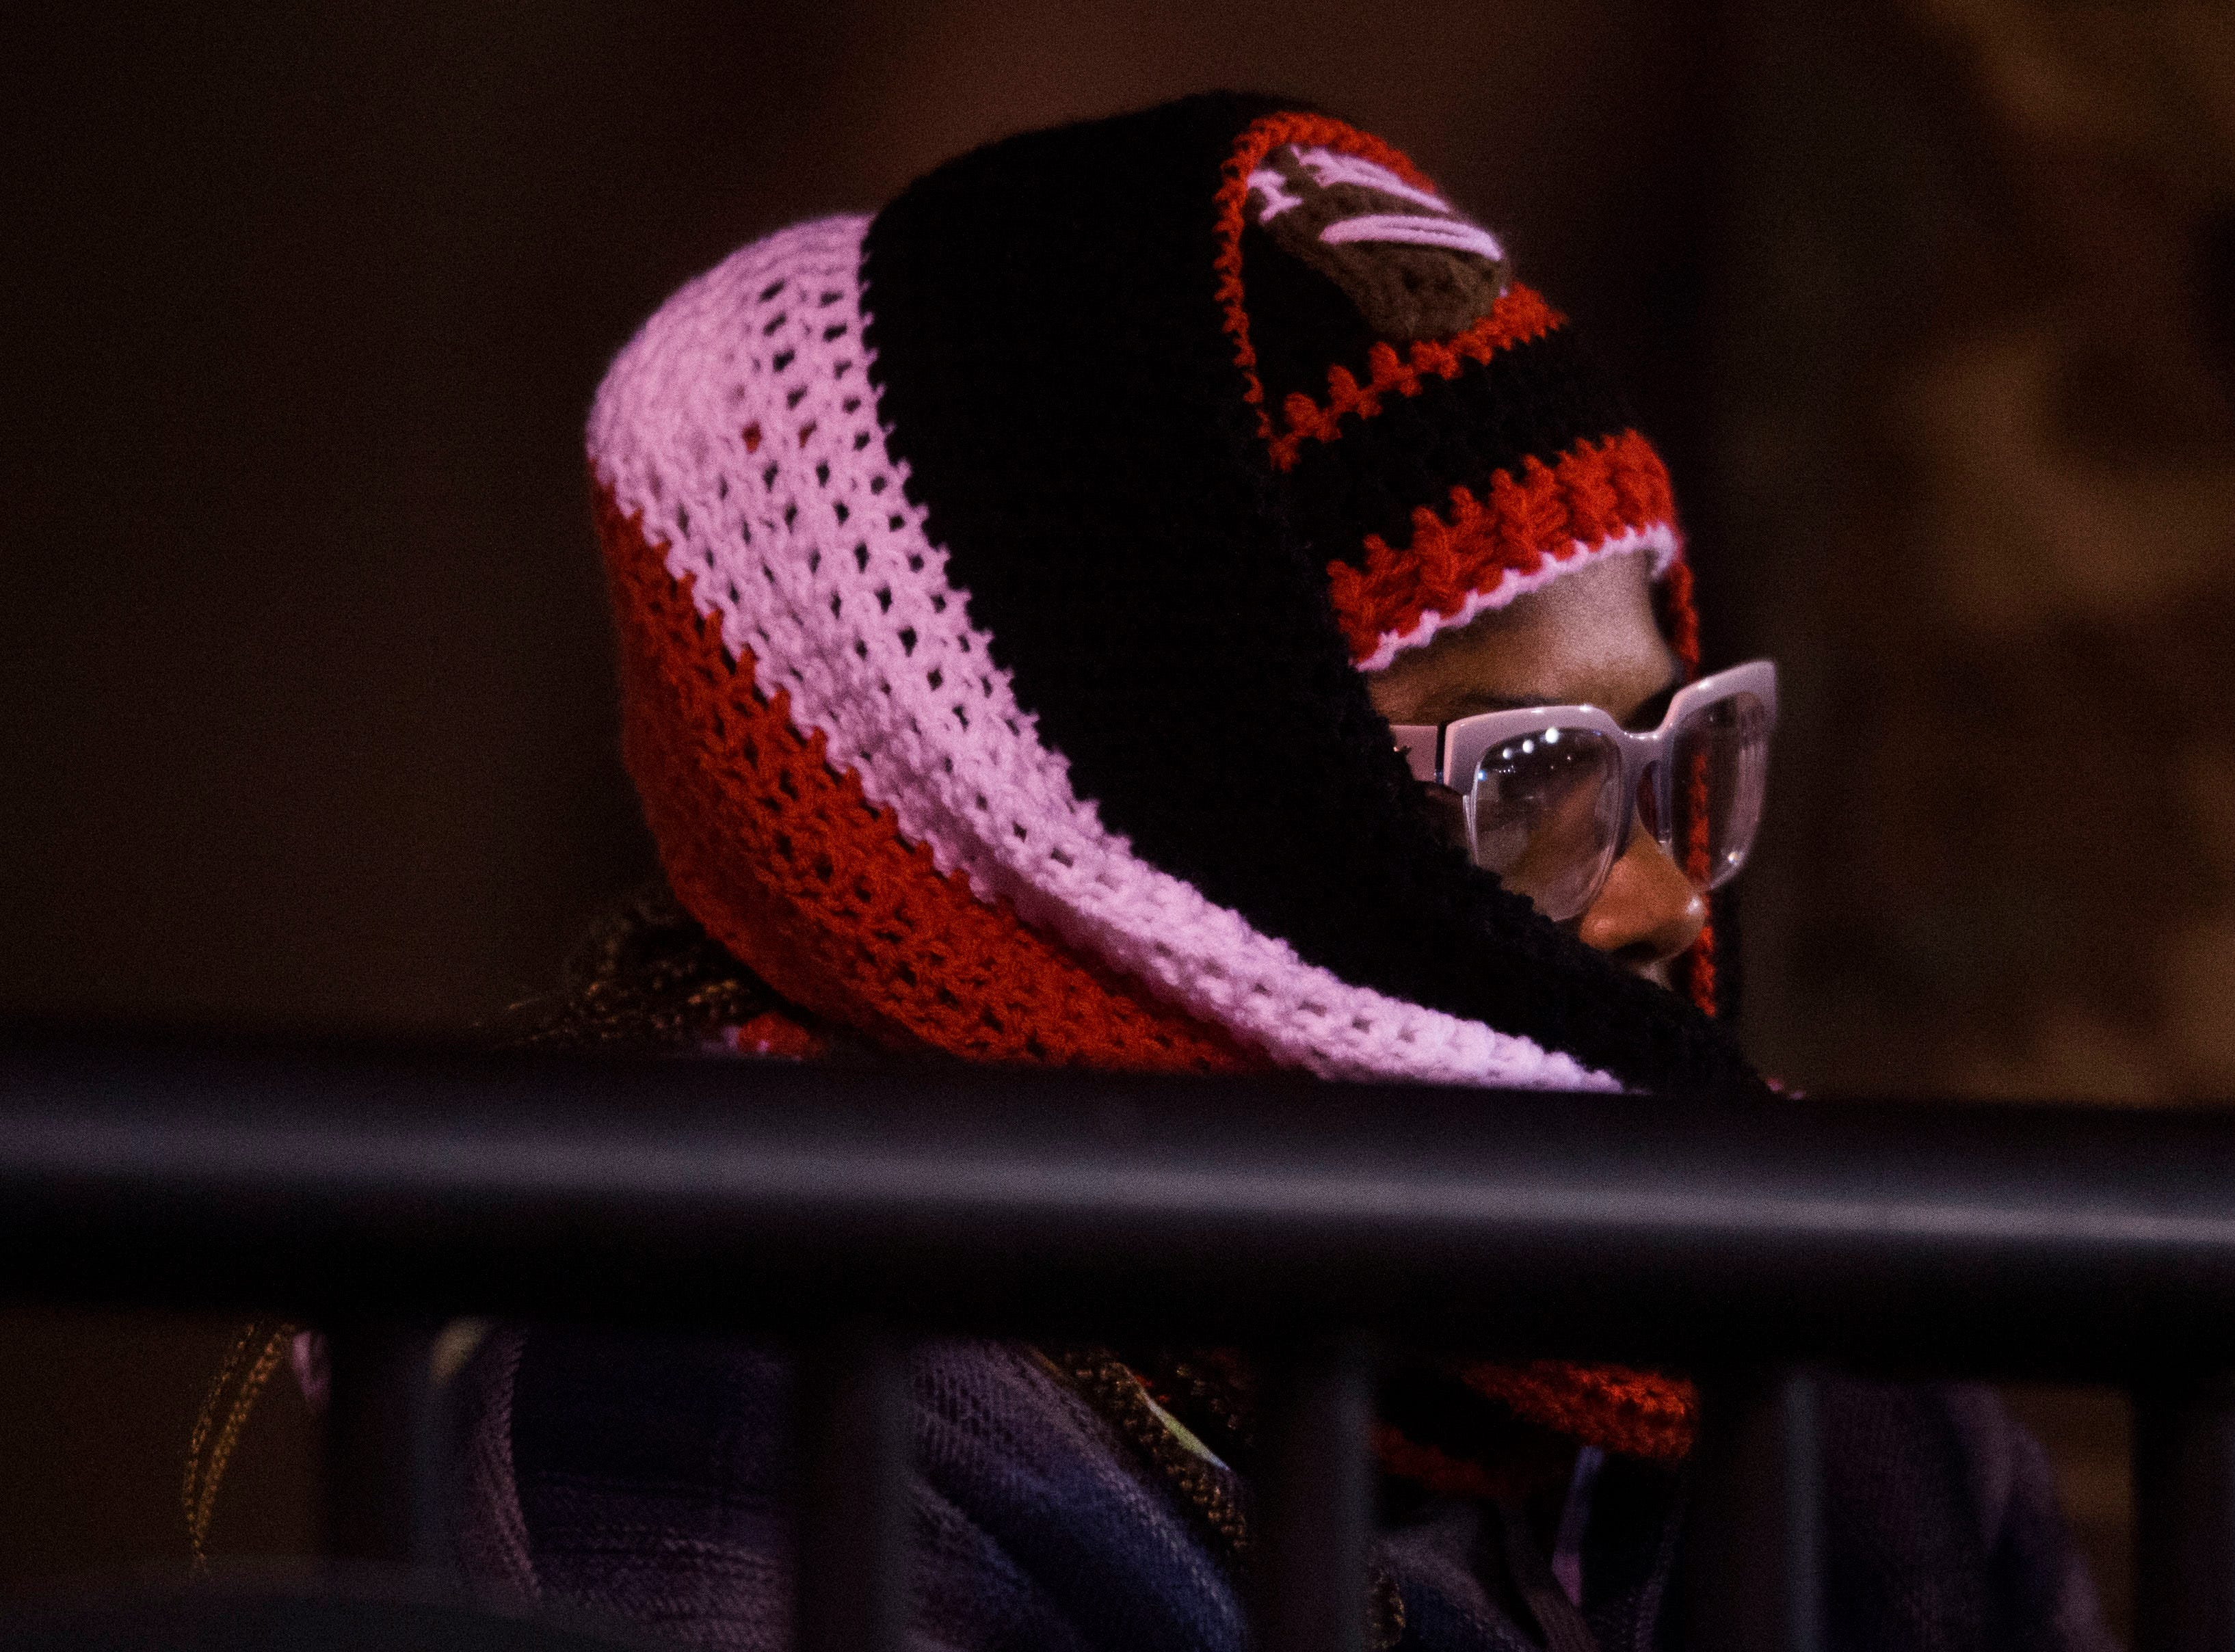 A Maryville fan sits bundled up behind the end zone during a first round playoff game between Maryville and Bearden at Maryville, Friday, Nov. 2, 2018. Maryville defeated Bearden 28-7.